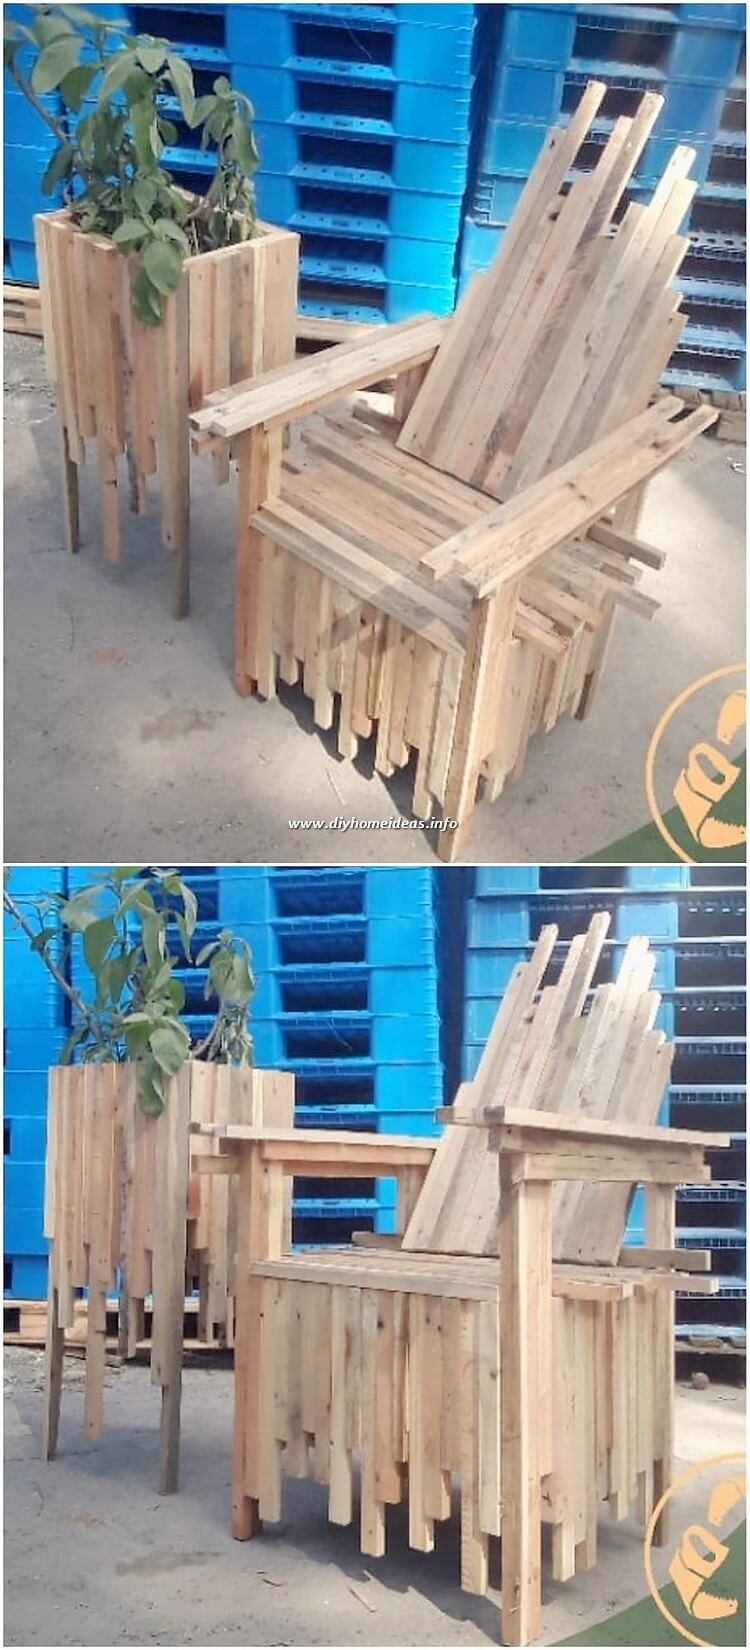 Pallet Chair and Planter